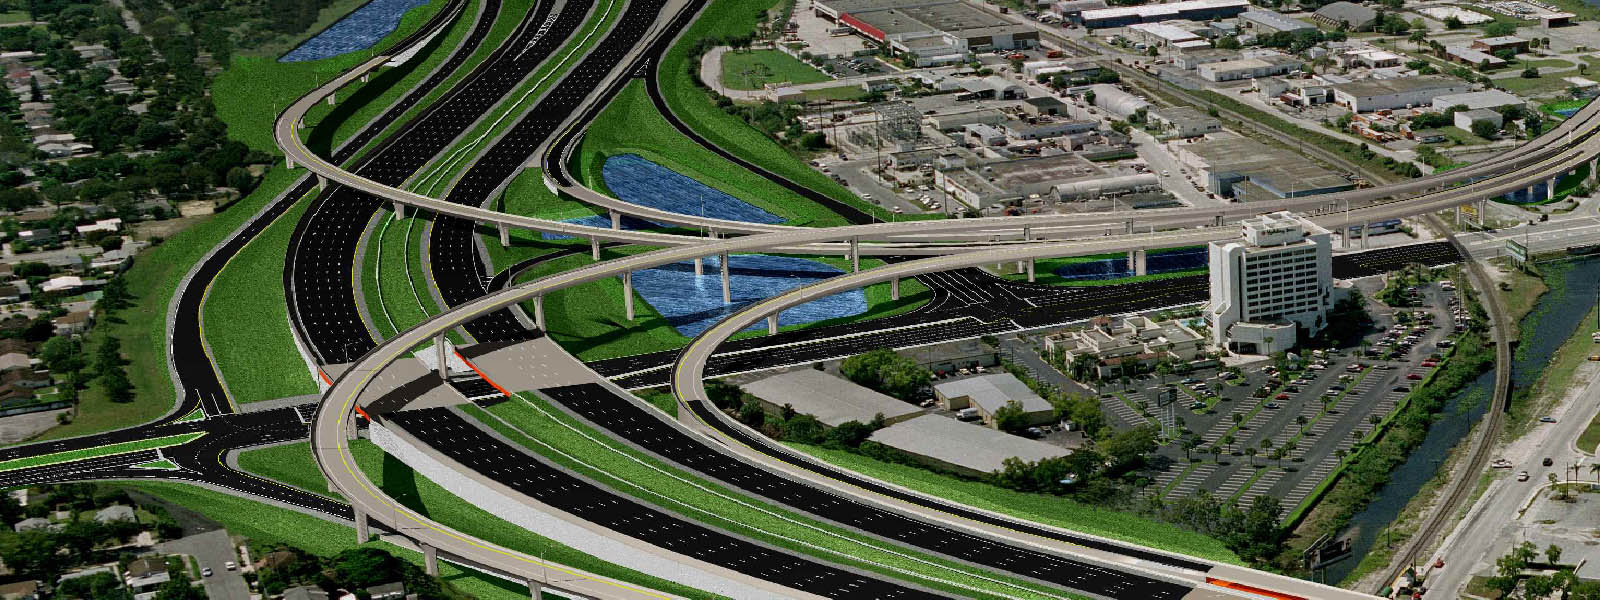 pb-freeway-aerial-view